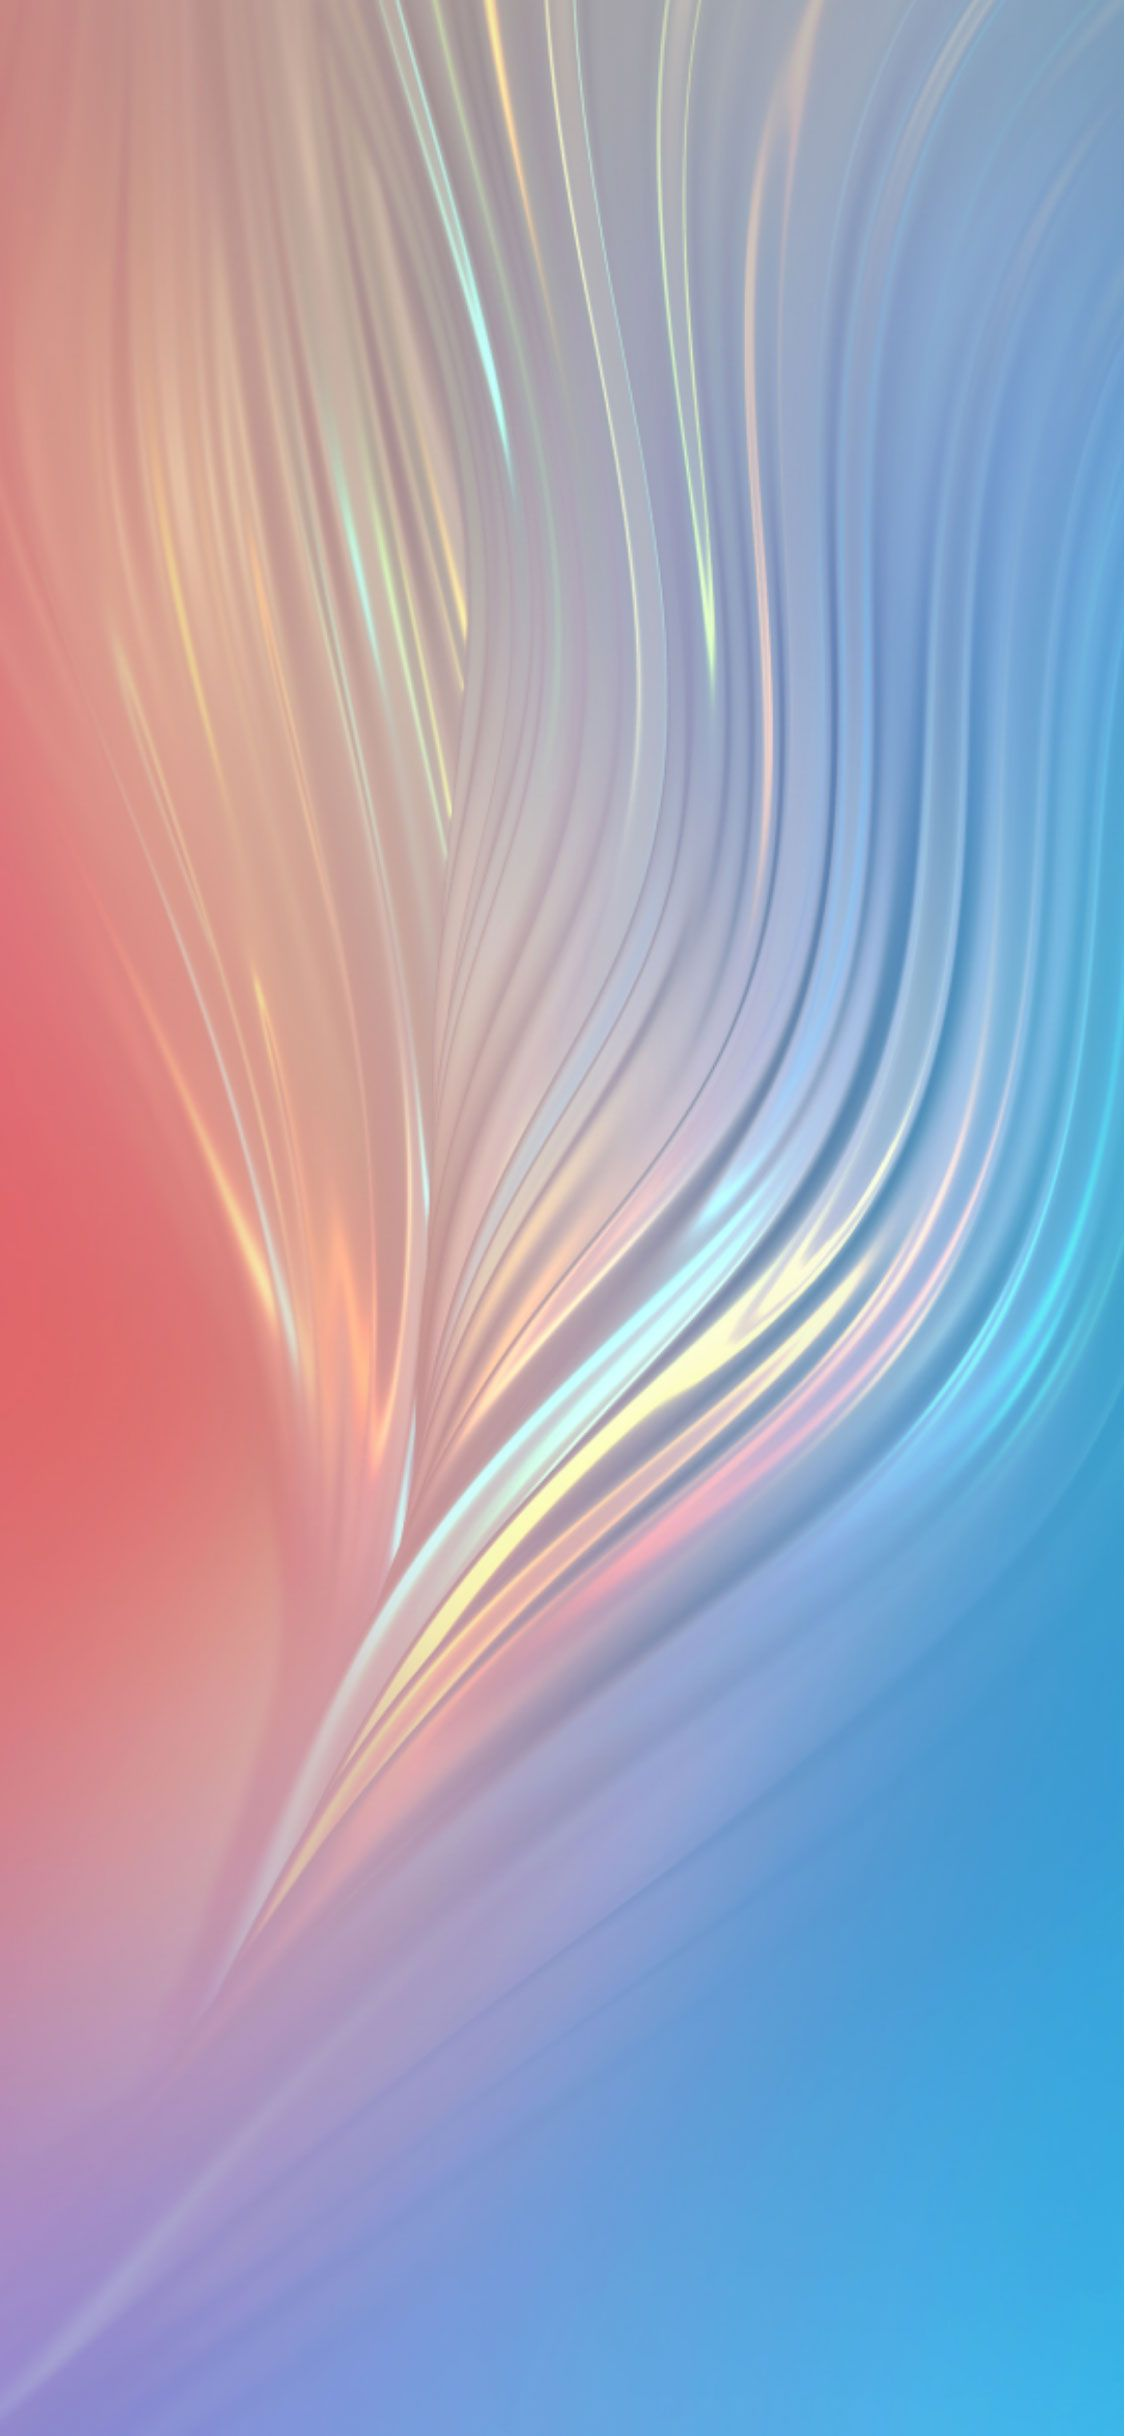 Pin by formalin hilo on Graphics Iphone wallpaper